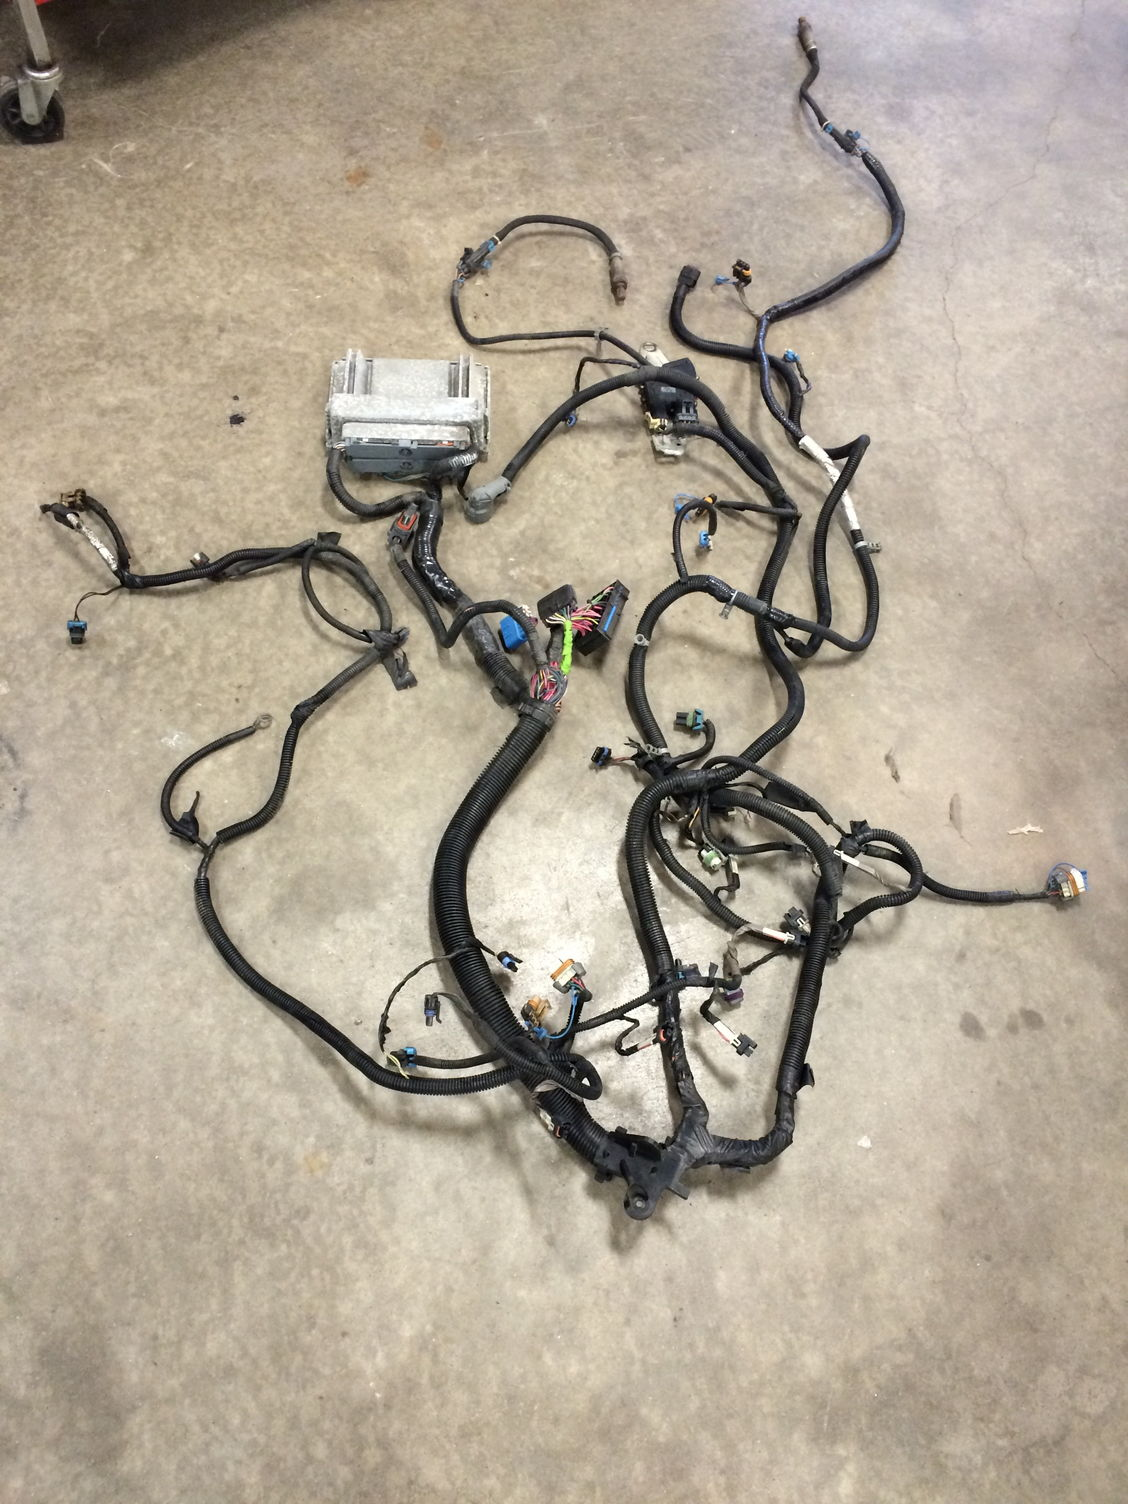 ls1 truck style harness pcm throttle body early drive. Black Bedroom Furniture Sets. Home Design Ideas